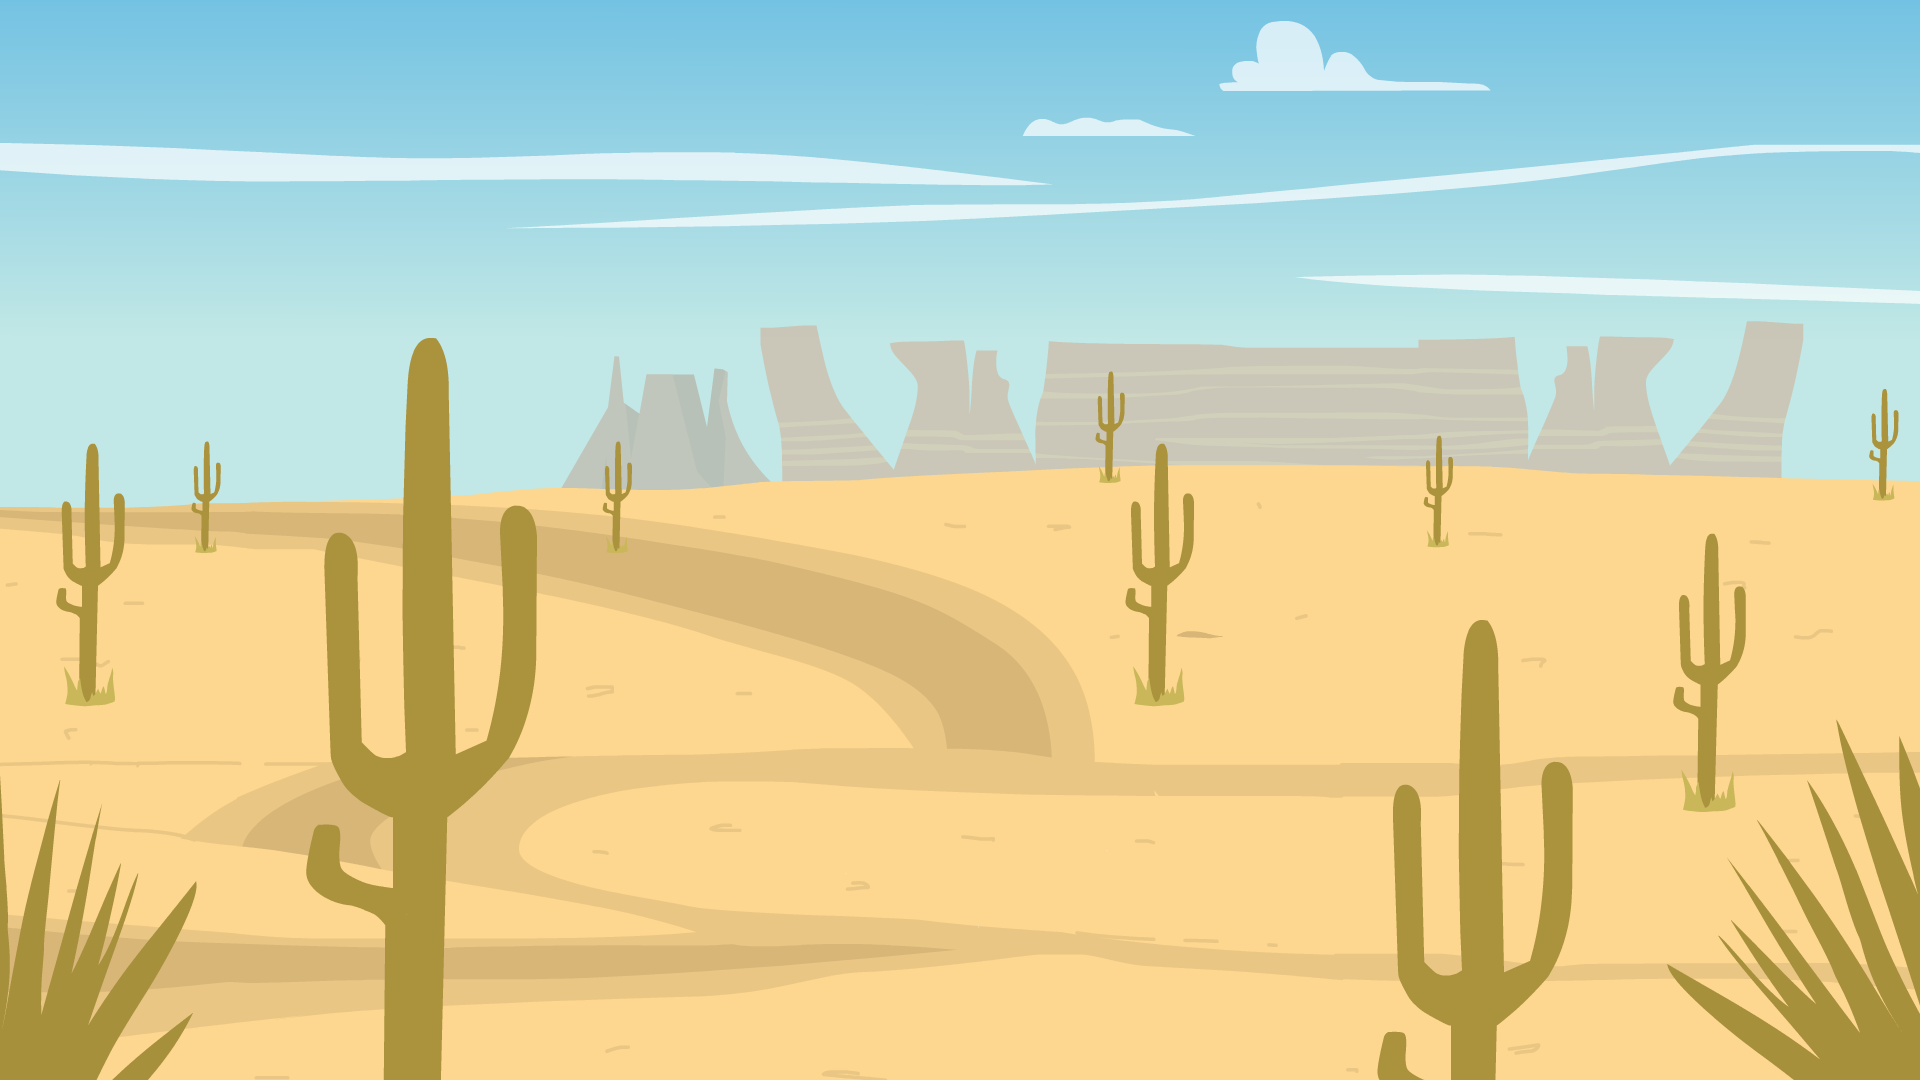 background desierto portada